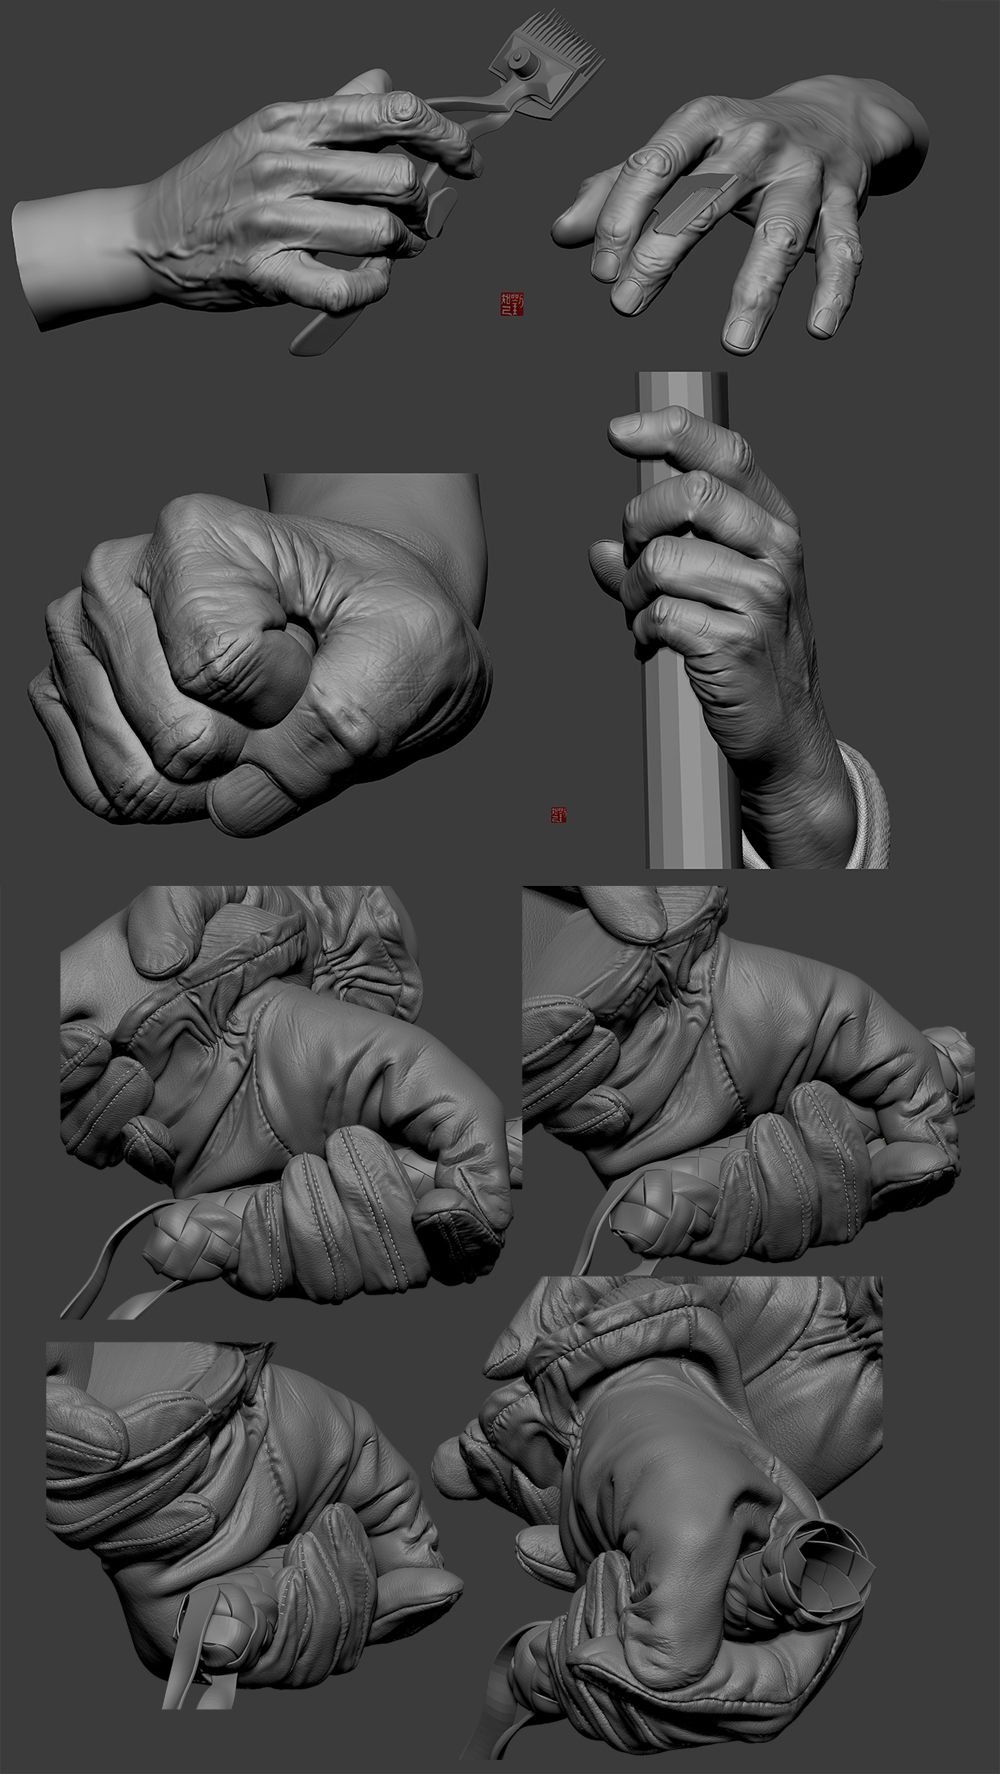 http://www.zbrushcentral.com/showthread.php?194435-Fratricidal ...